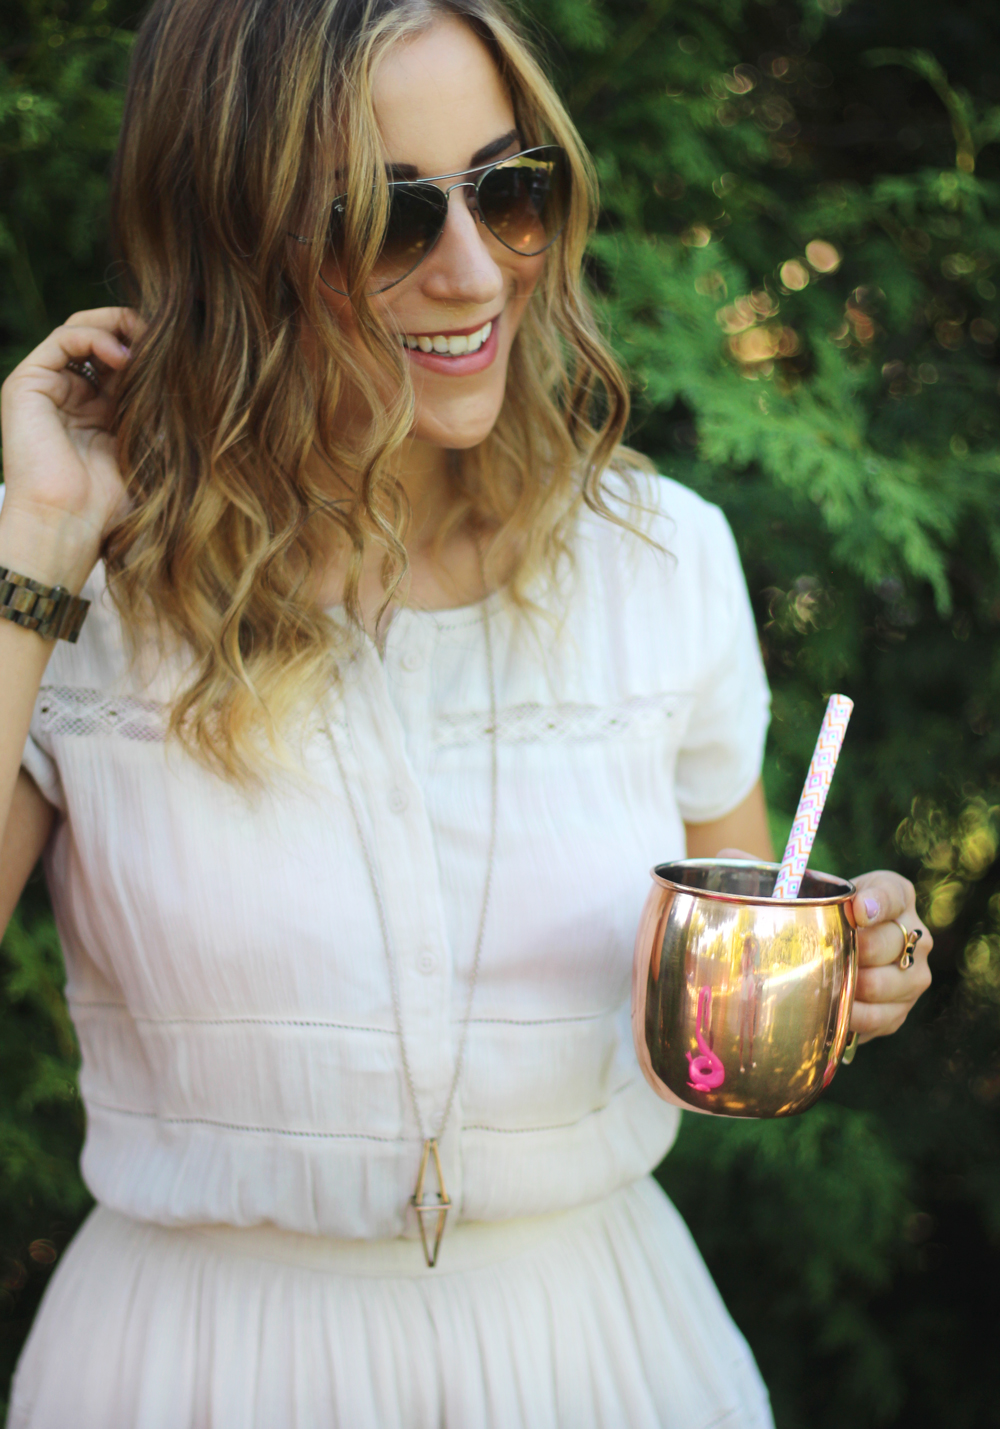 Toronto Fashion, Beauty and Lifestyle Blogger, Jackie Goldhar, in a dress from Aritzia